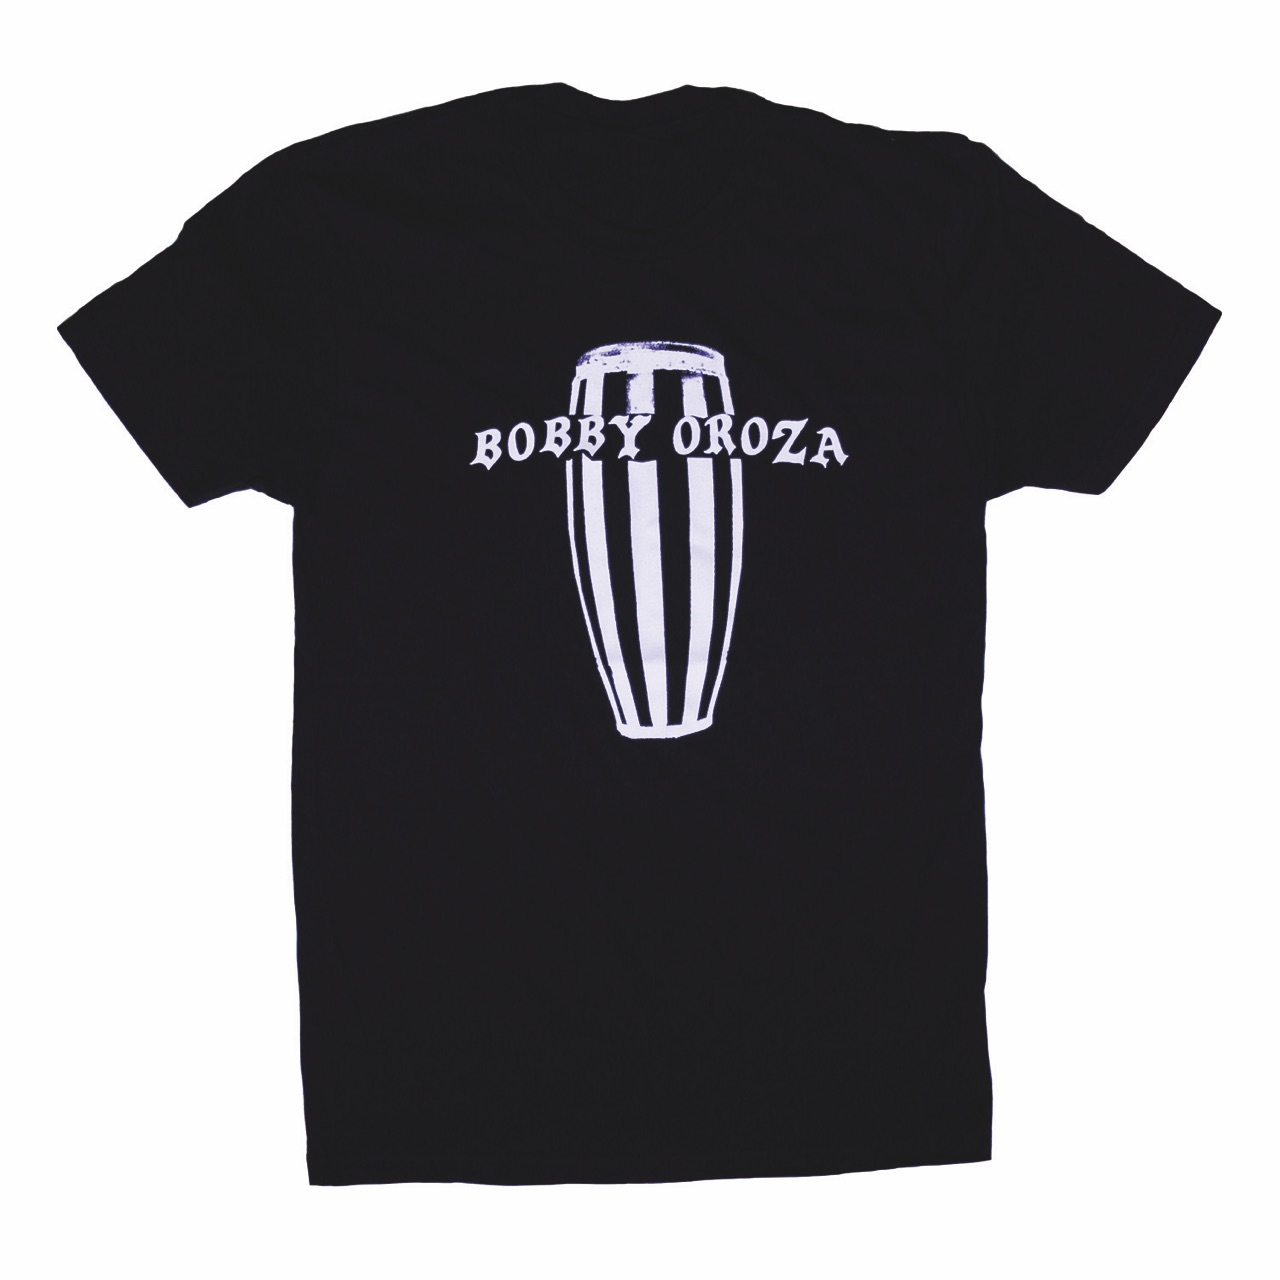 bobby oroza tee shirt big crown records